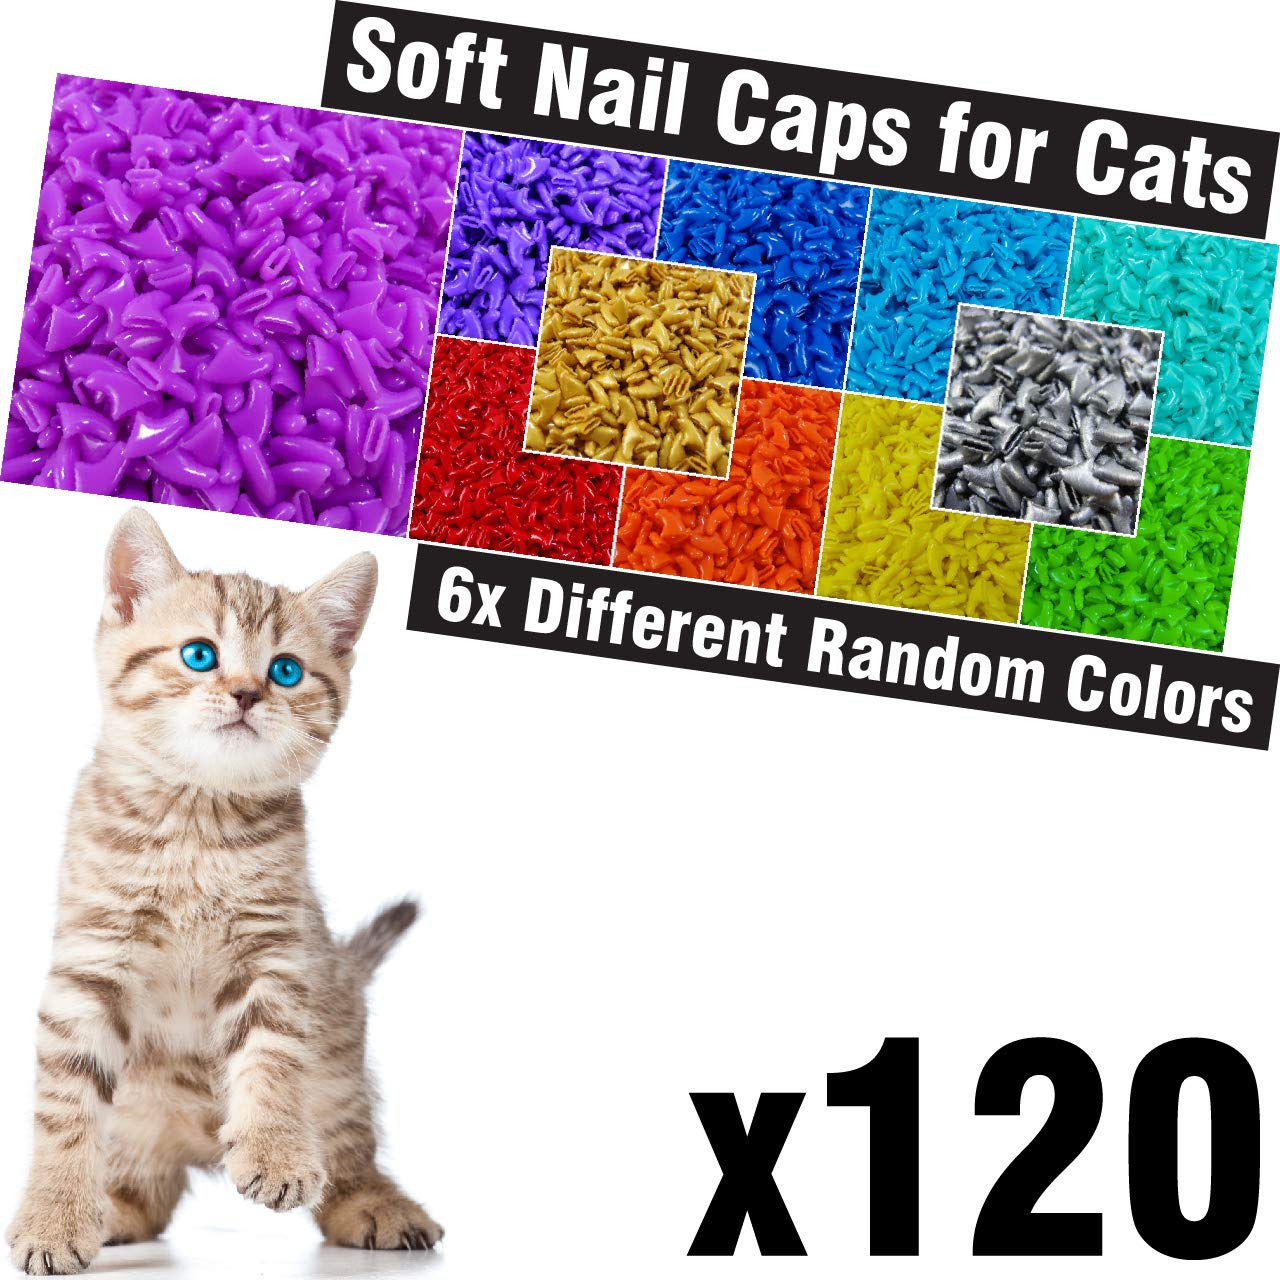 120 pcs Soft Cat Claw Caps for Cats Nail Claws 6X Different Random Colors + 6X Adhesive Glue + 6X Applicator, Pet Cap Tips Cover Paws Grooming Soft Covers zetpo